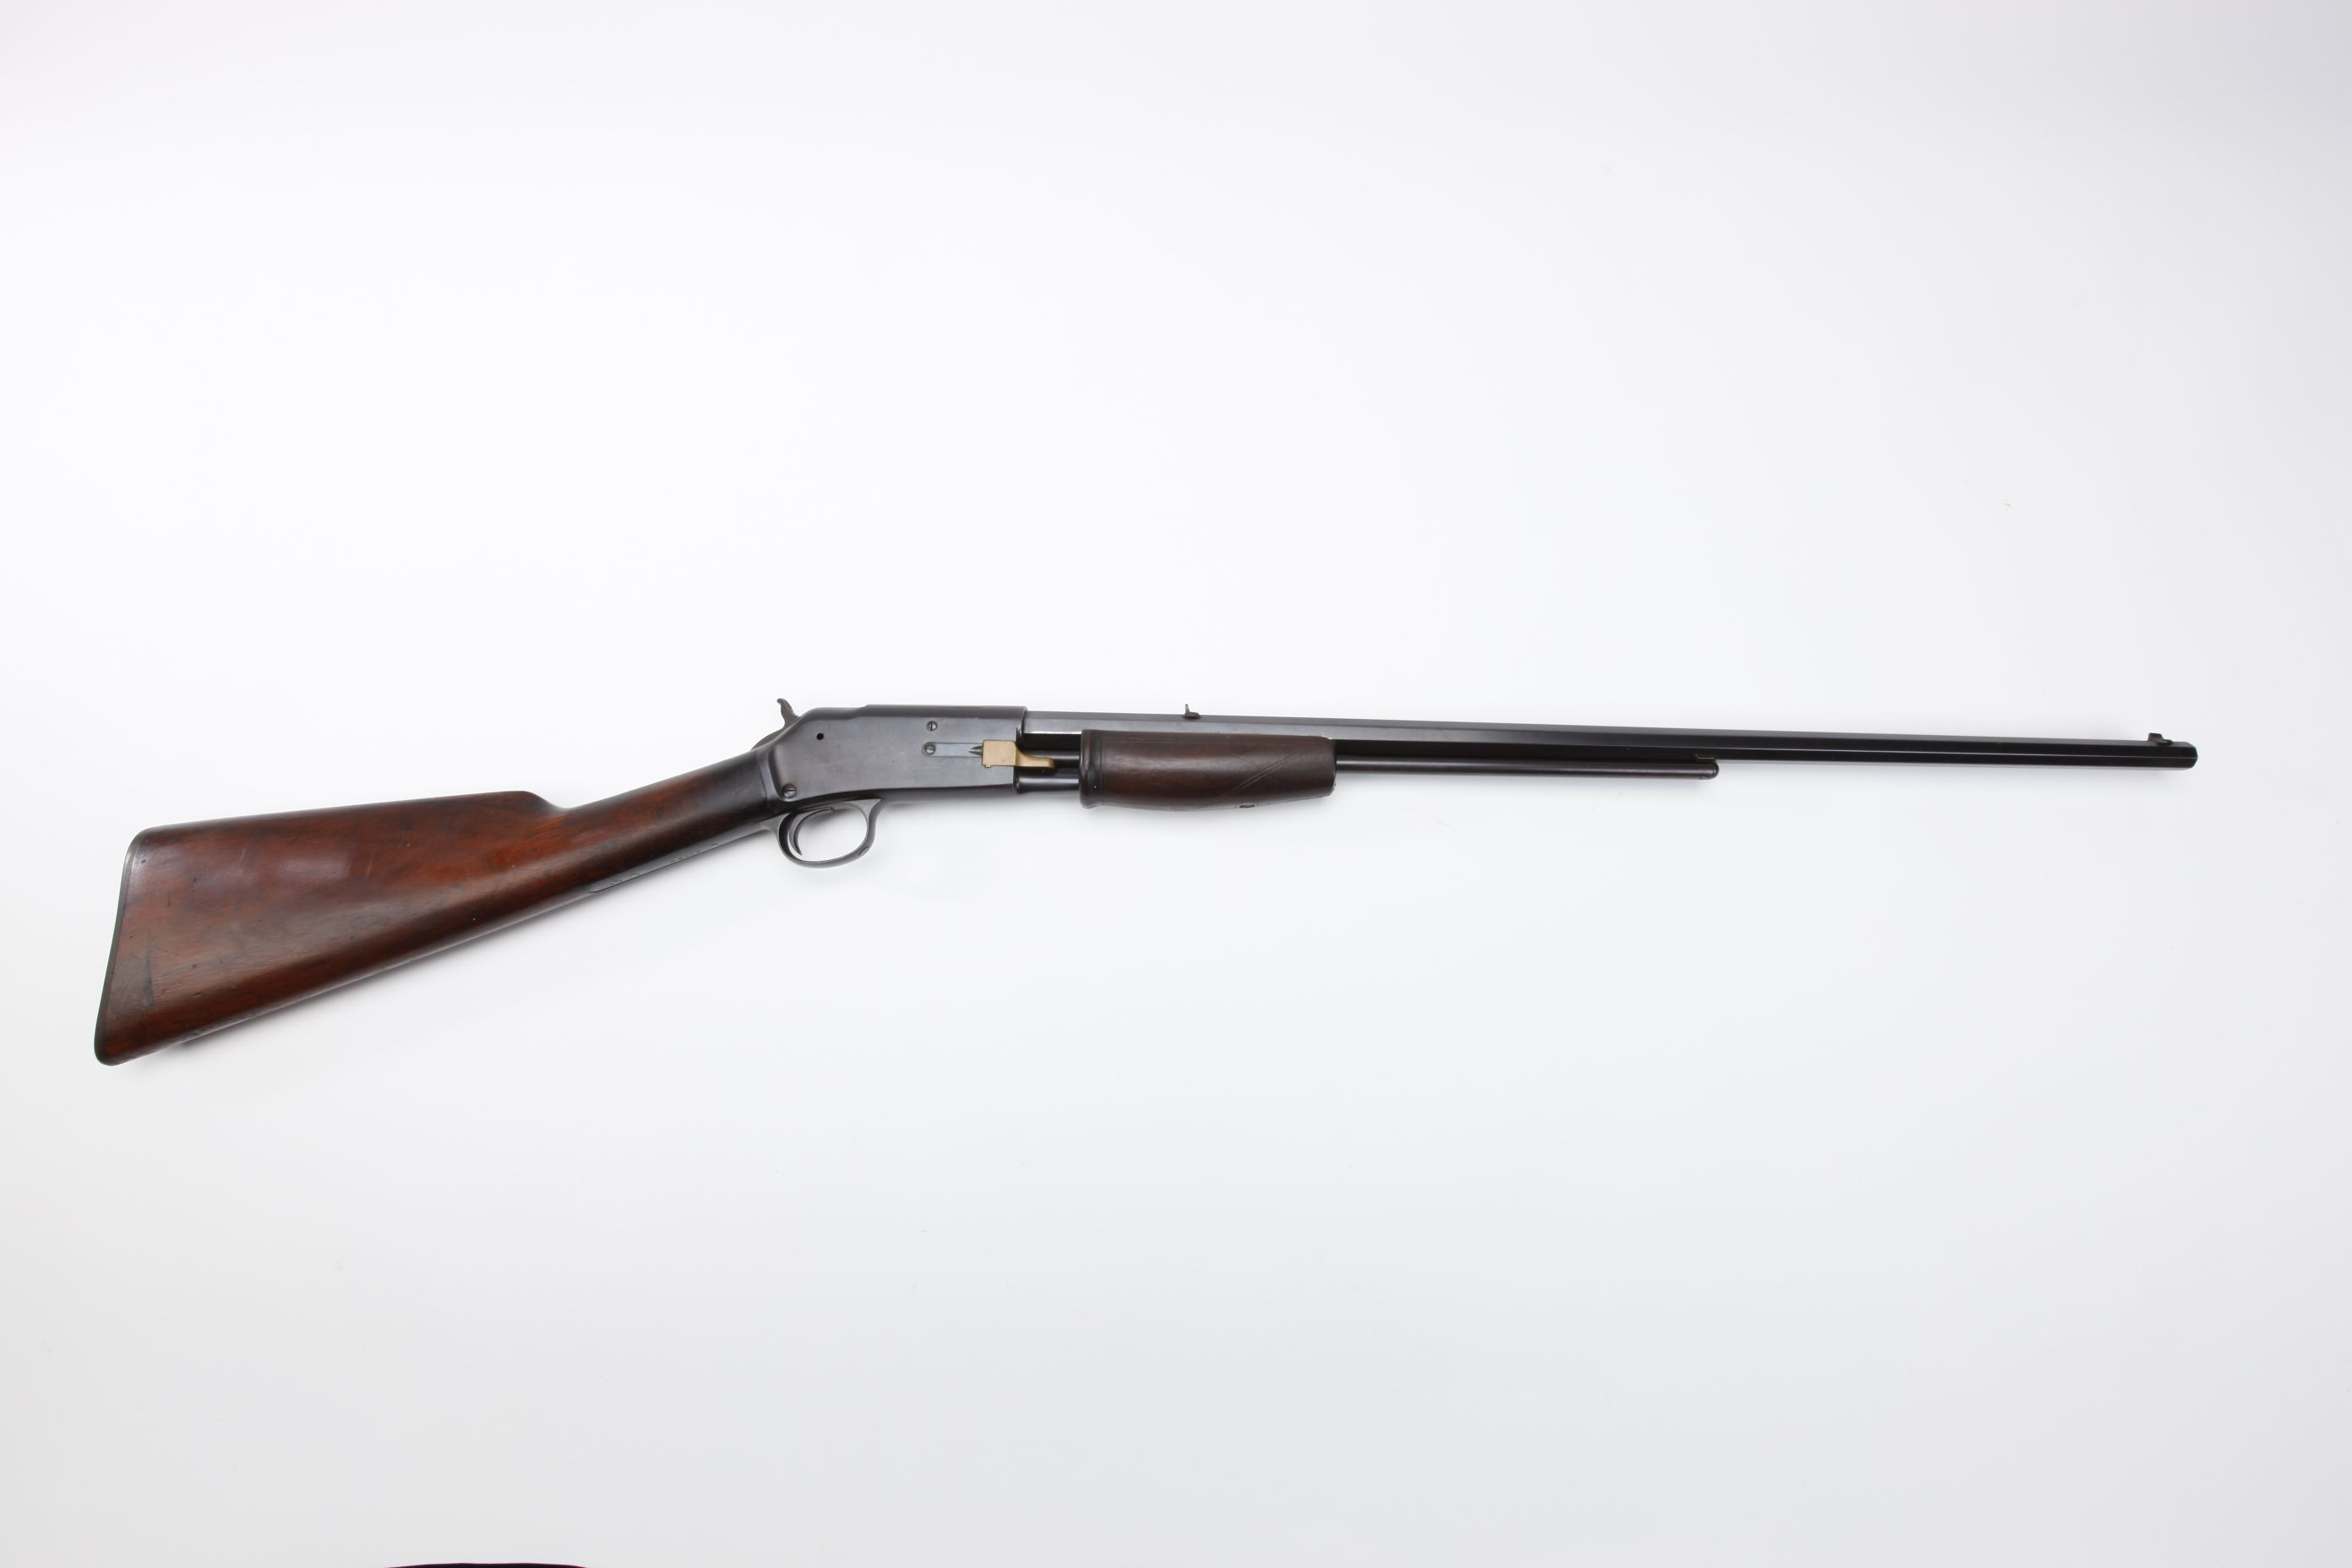 Colt Lightning Slide Action Rifle Small Frame (1)